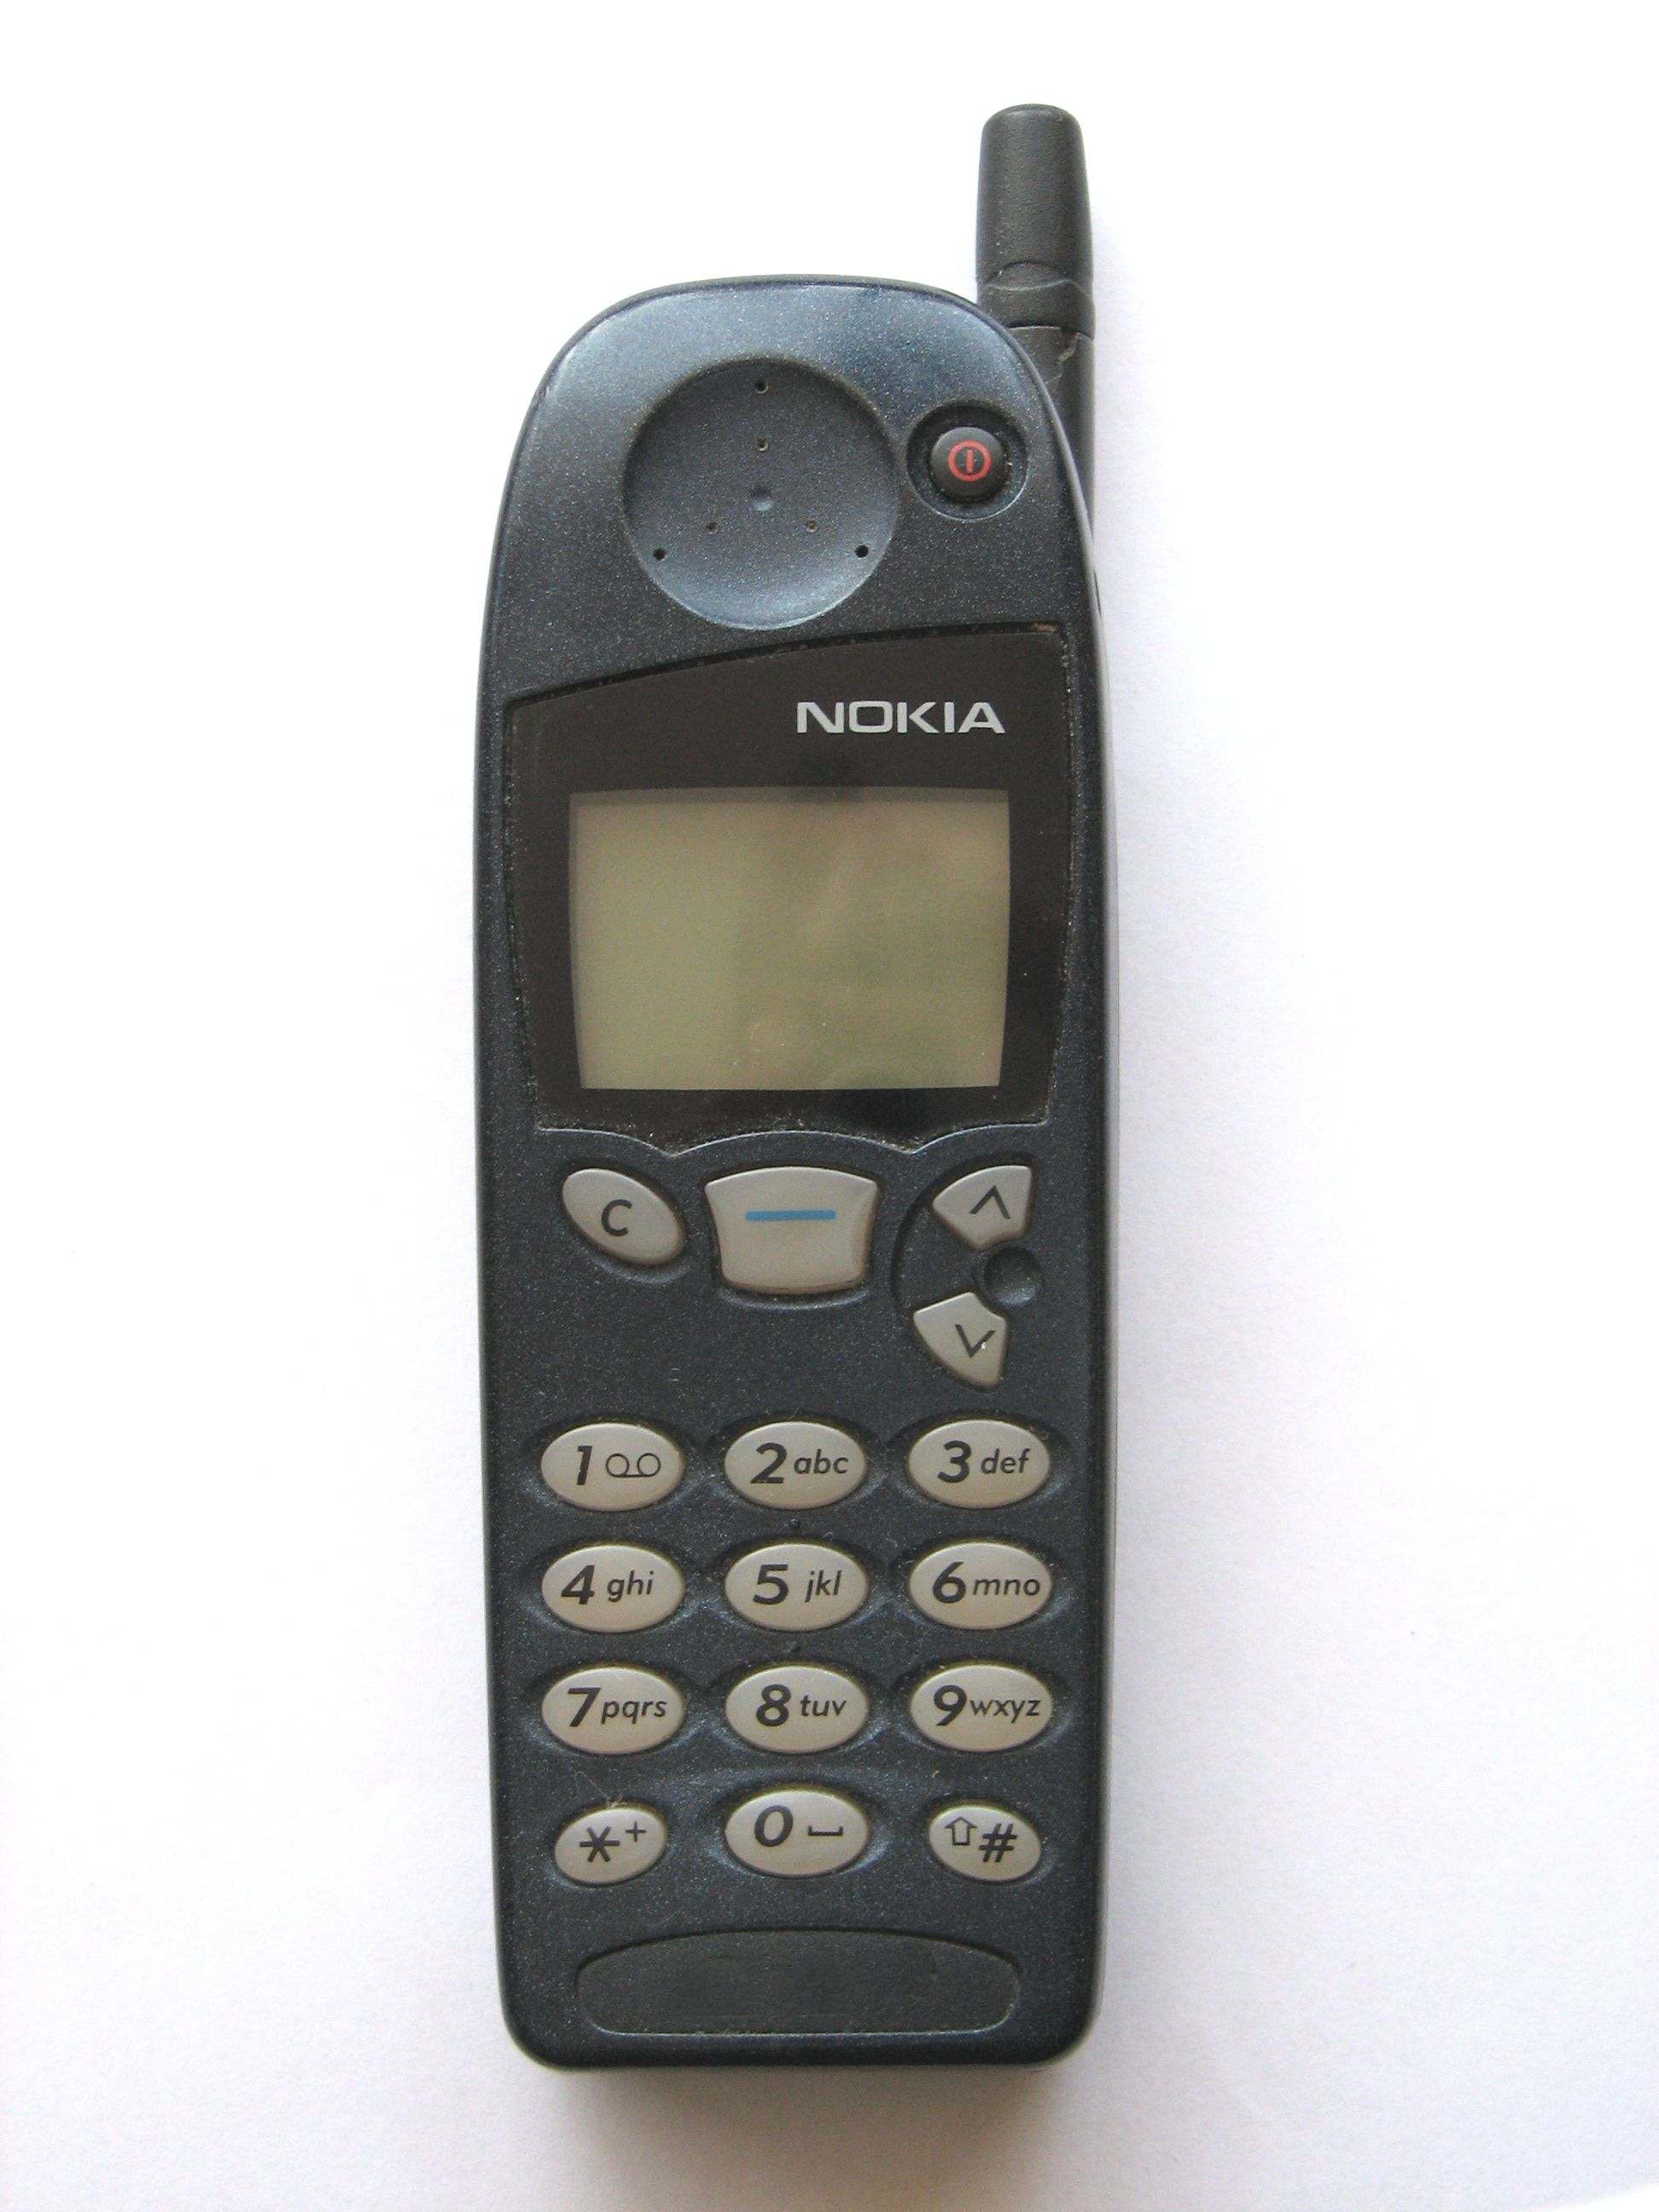 The Original Nokia Cell Phone 90s 00s Nostalgia Memories Snake Ringtone